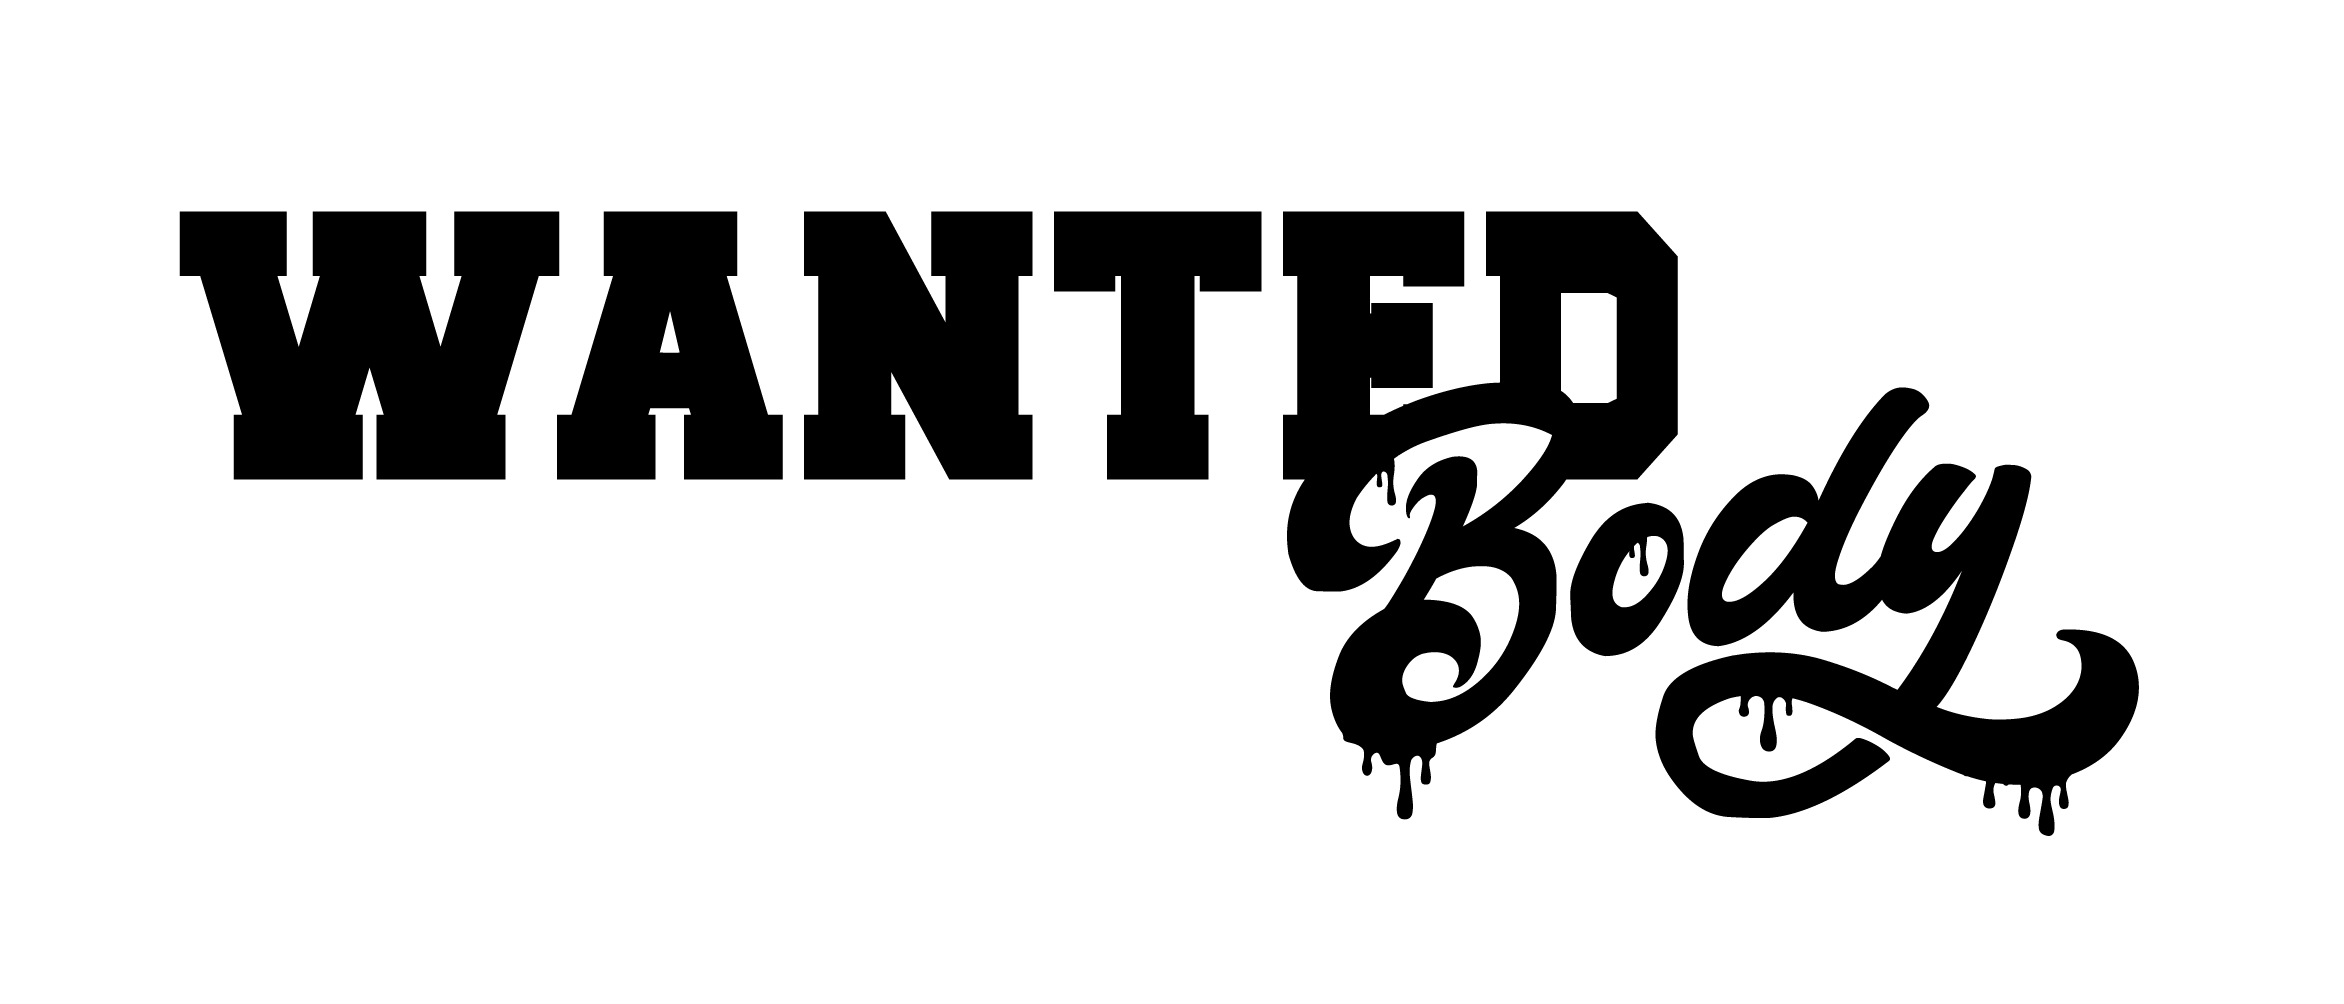 Wanted Body